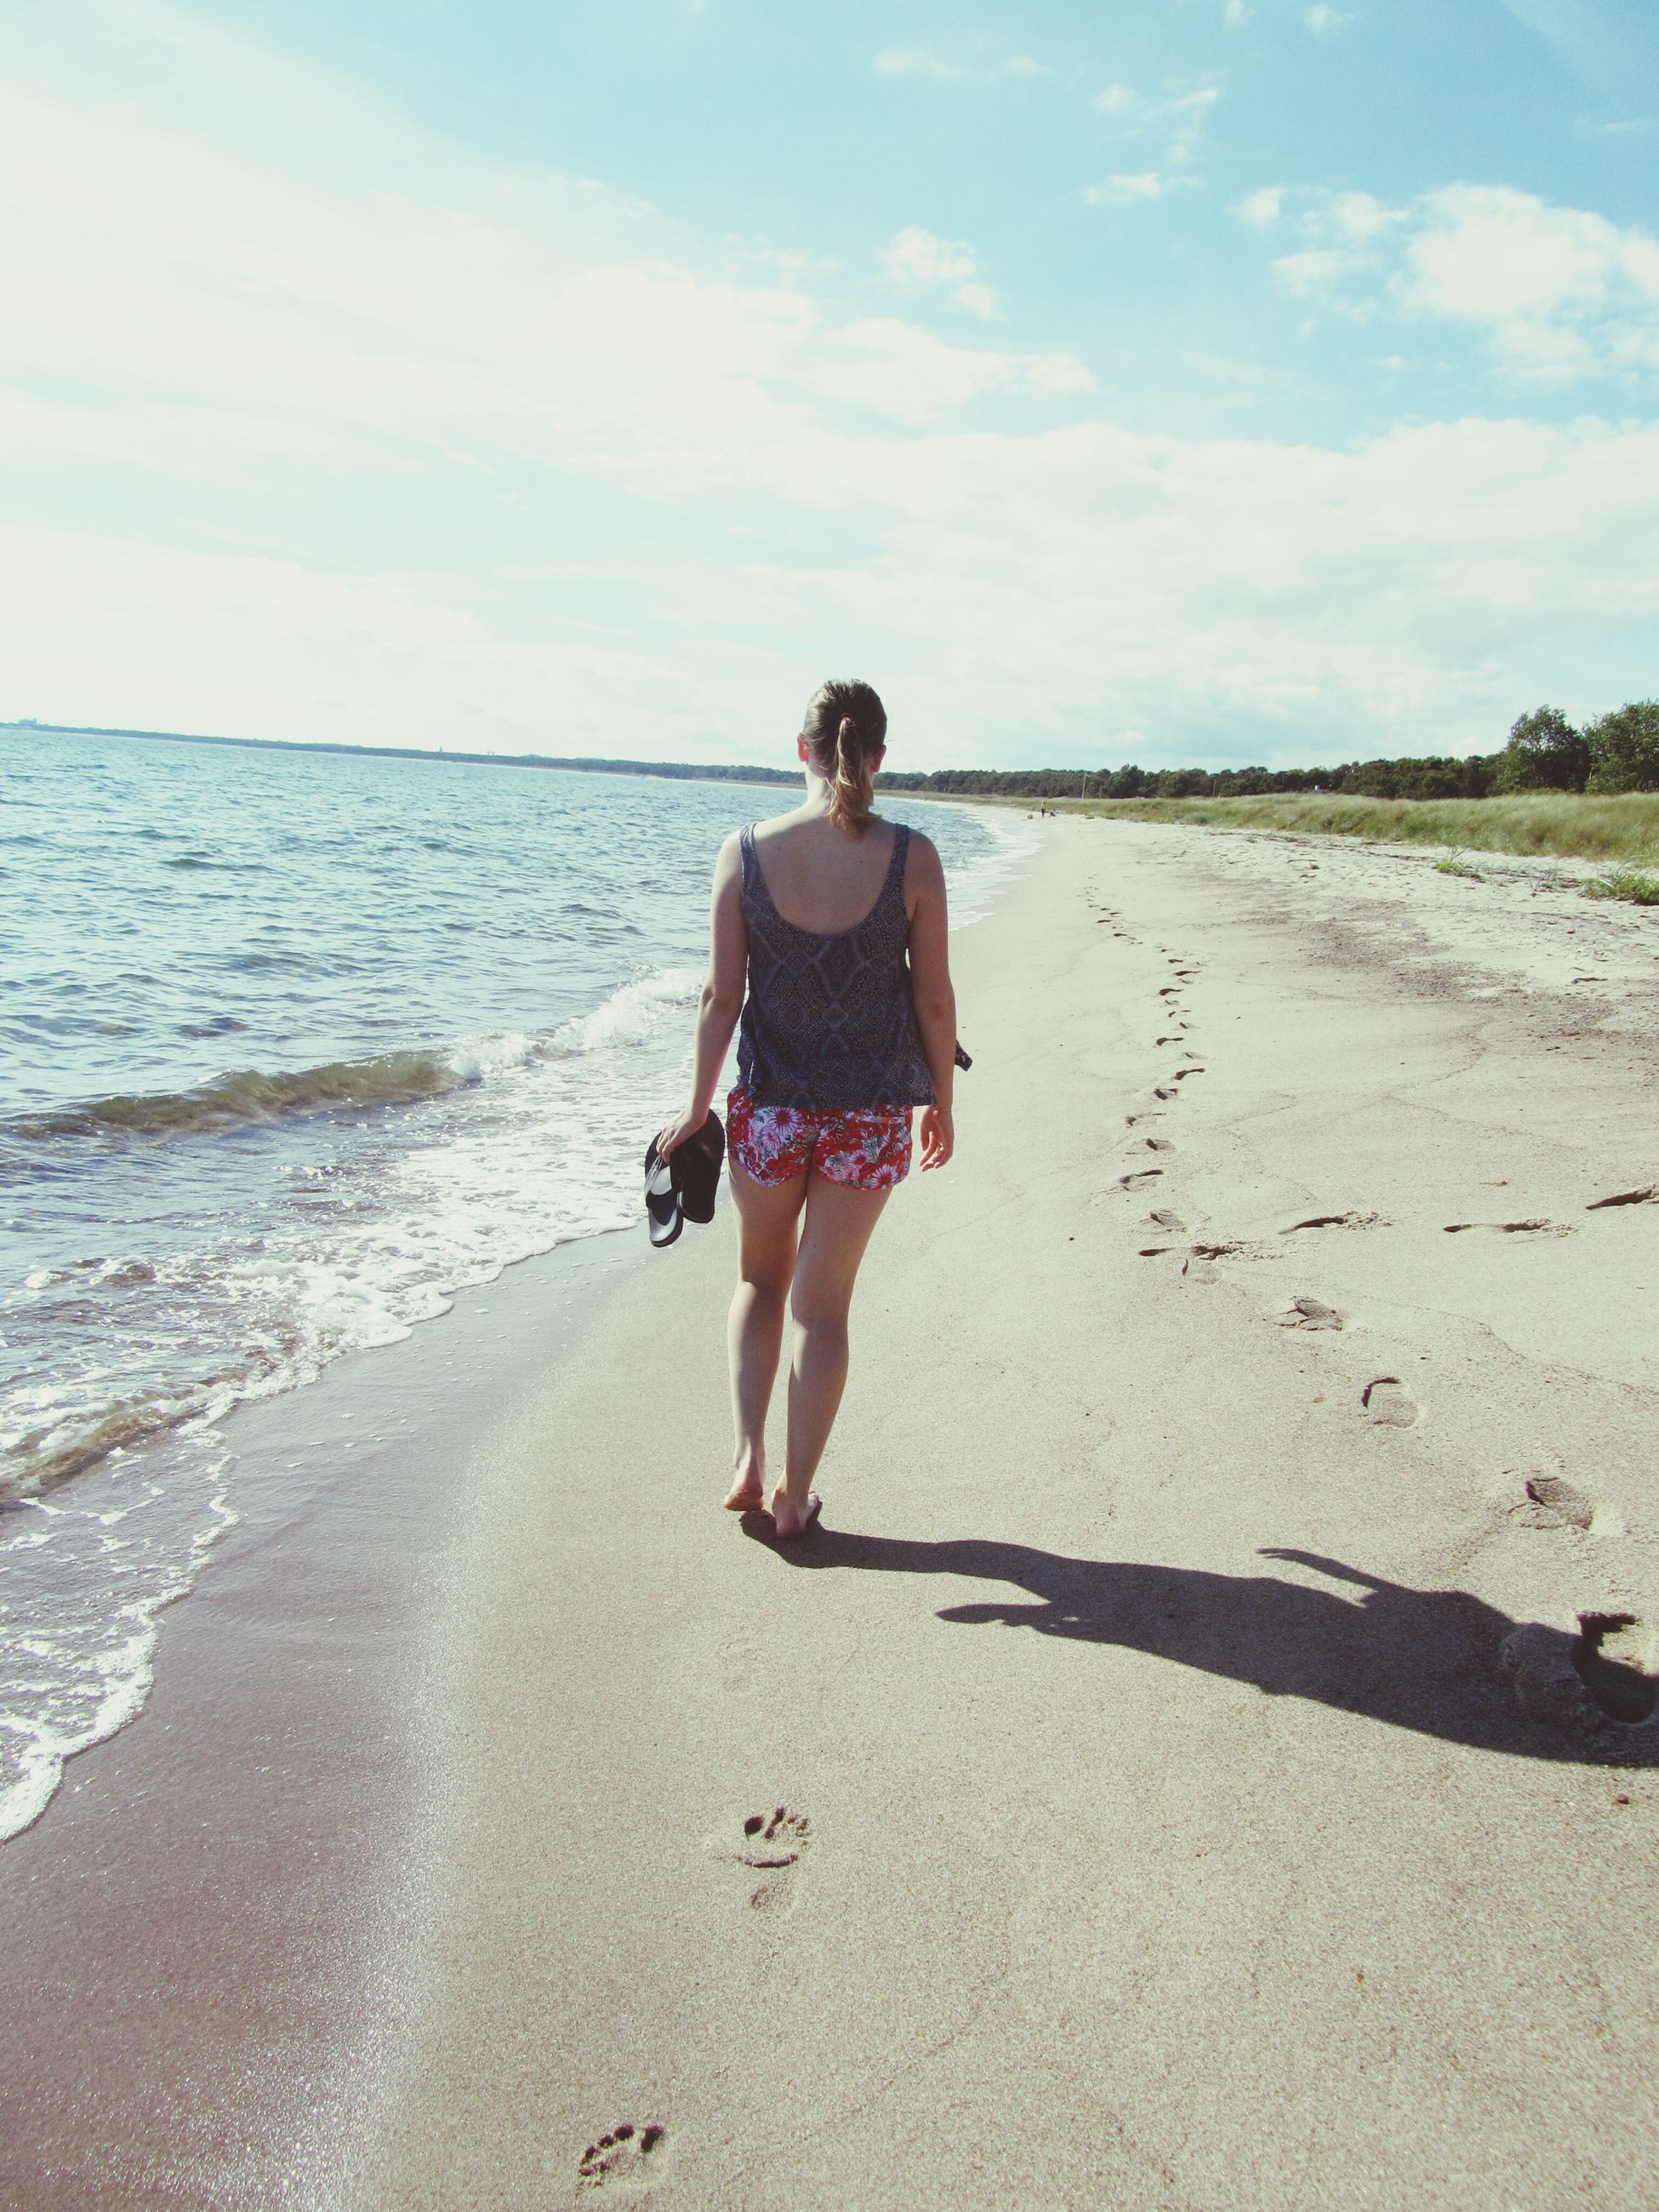 beach, full length, sea, sunlight, vacations, sand, water, sky, shadow, walking, shore, leisure activity, summer, person, cloud - sky, casual clothing, sunny, tourism, scenics, day, tourist, young adult, weekend activities, tranquil scene, nature, beauty in nature, outdoors, confidence, tranquility